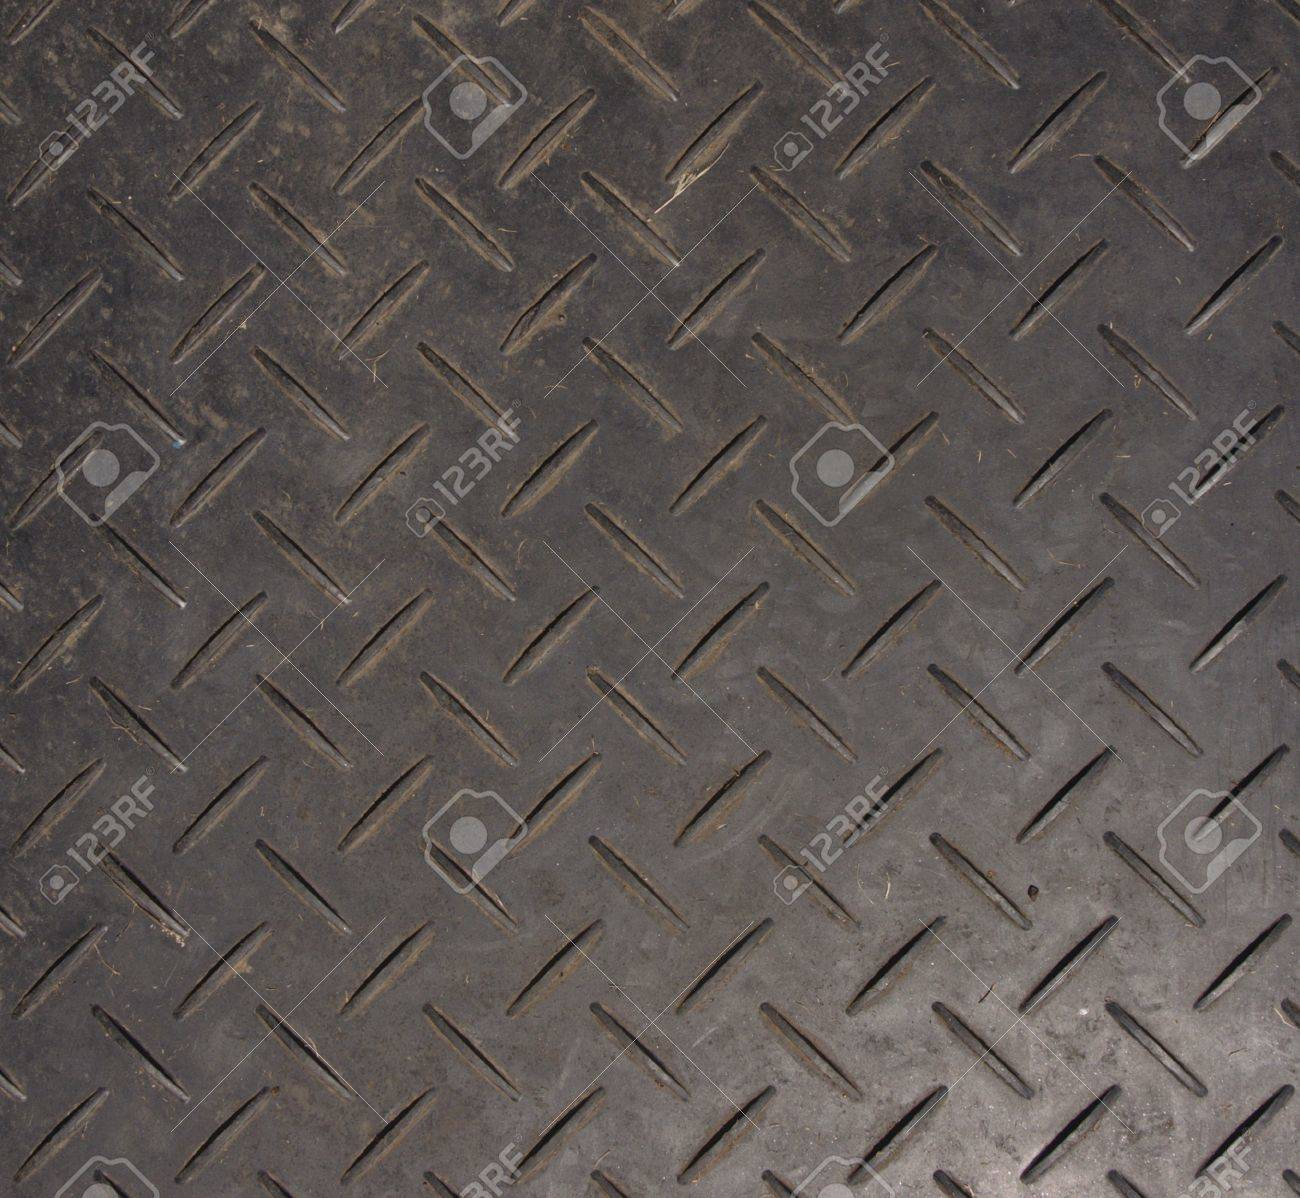 checker plate plastic sheet you lay down on soft ground to drive over in cars and & Checker Plate Plastic Sheet You Lay Down On Soft Ground To Drive ...